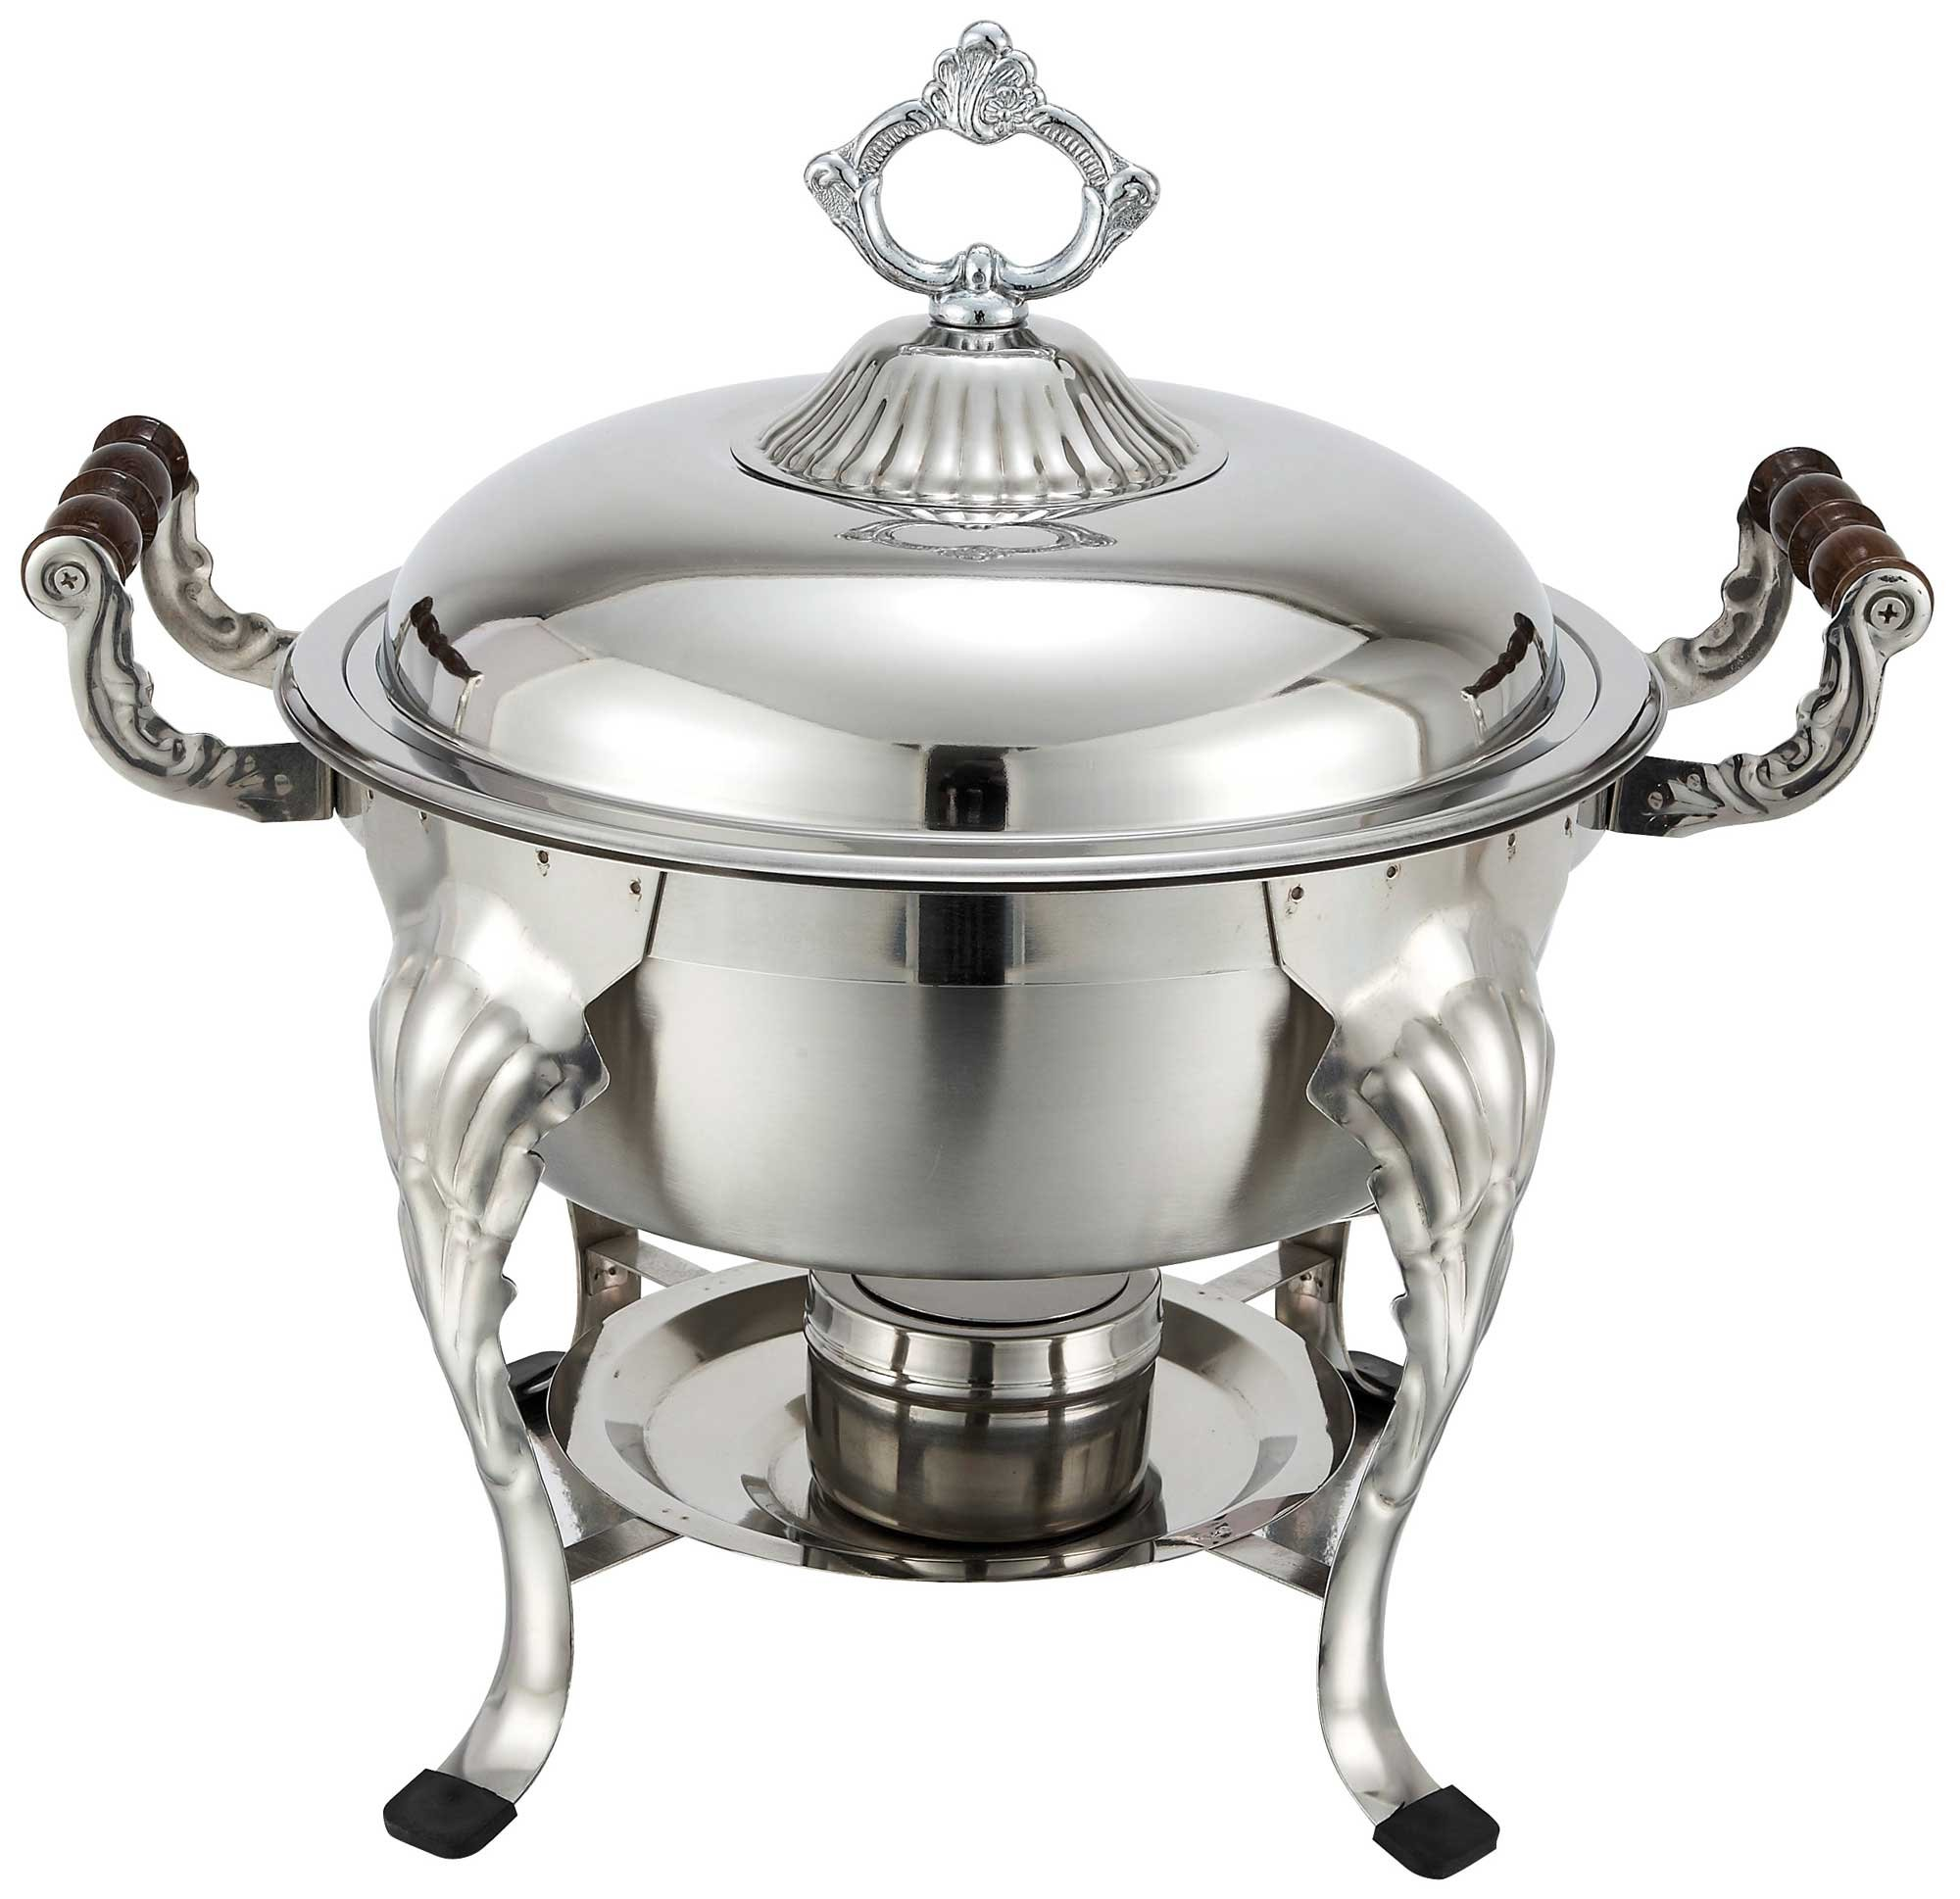 Winco 708 Round Crown Chafer, 6-Quart